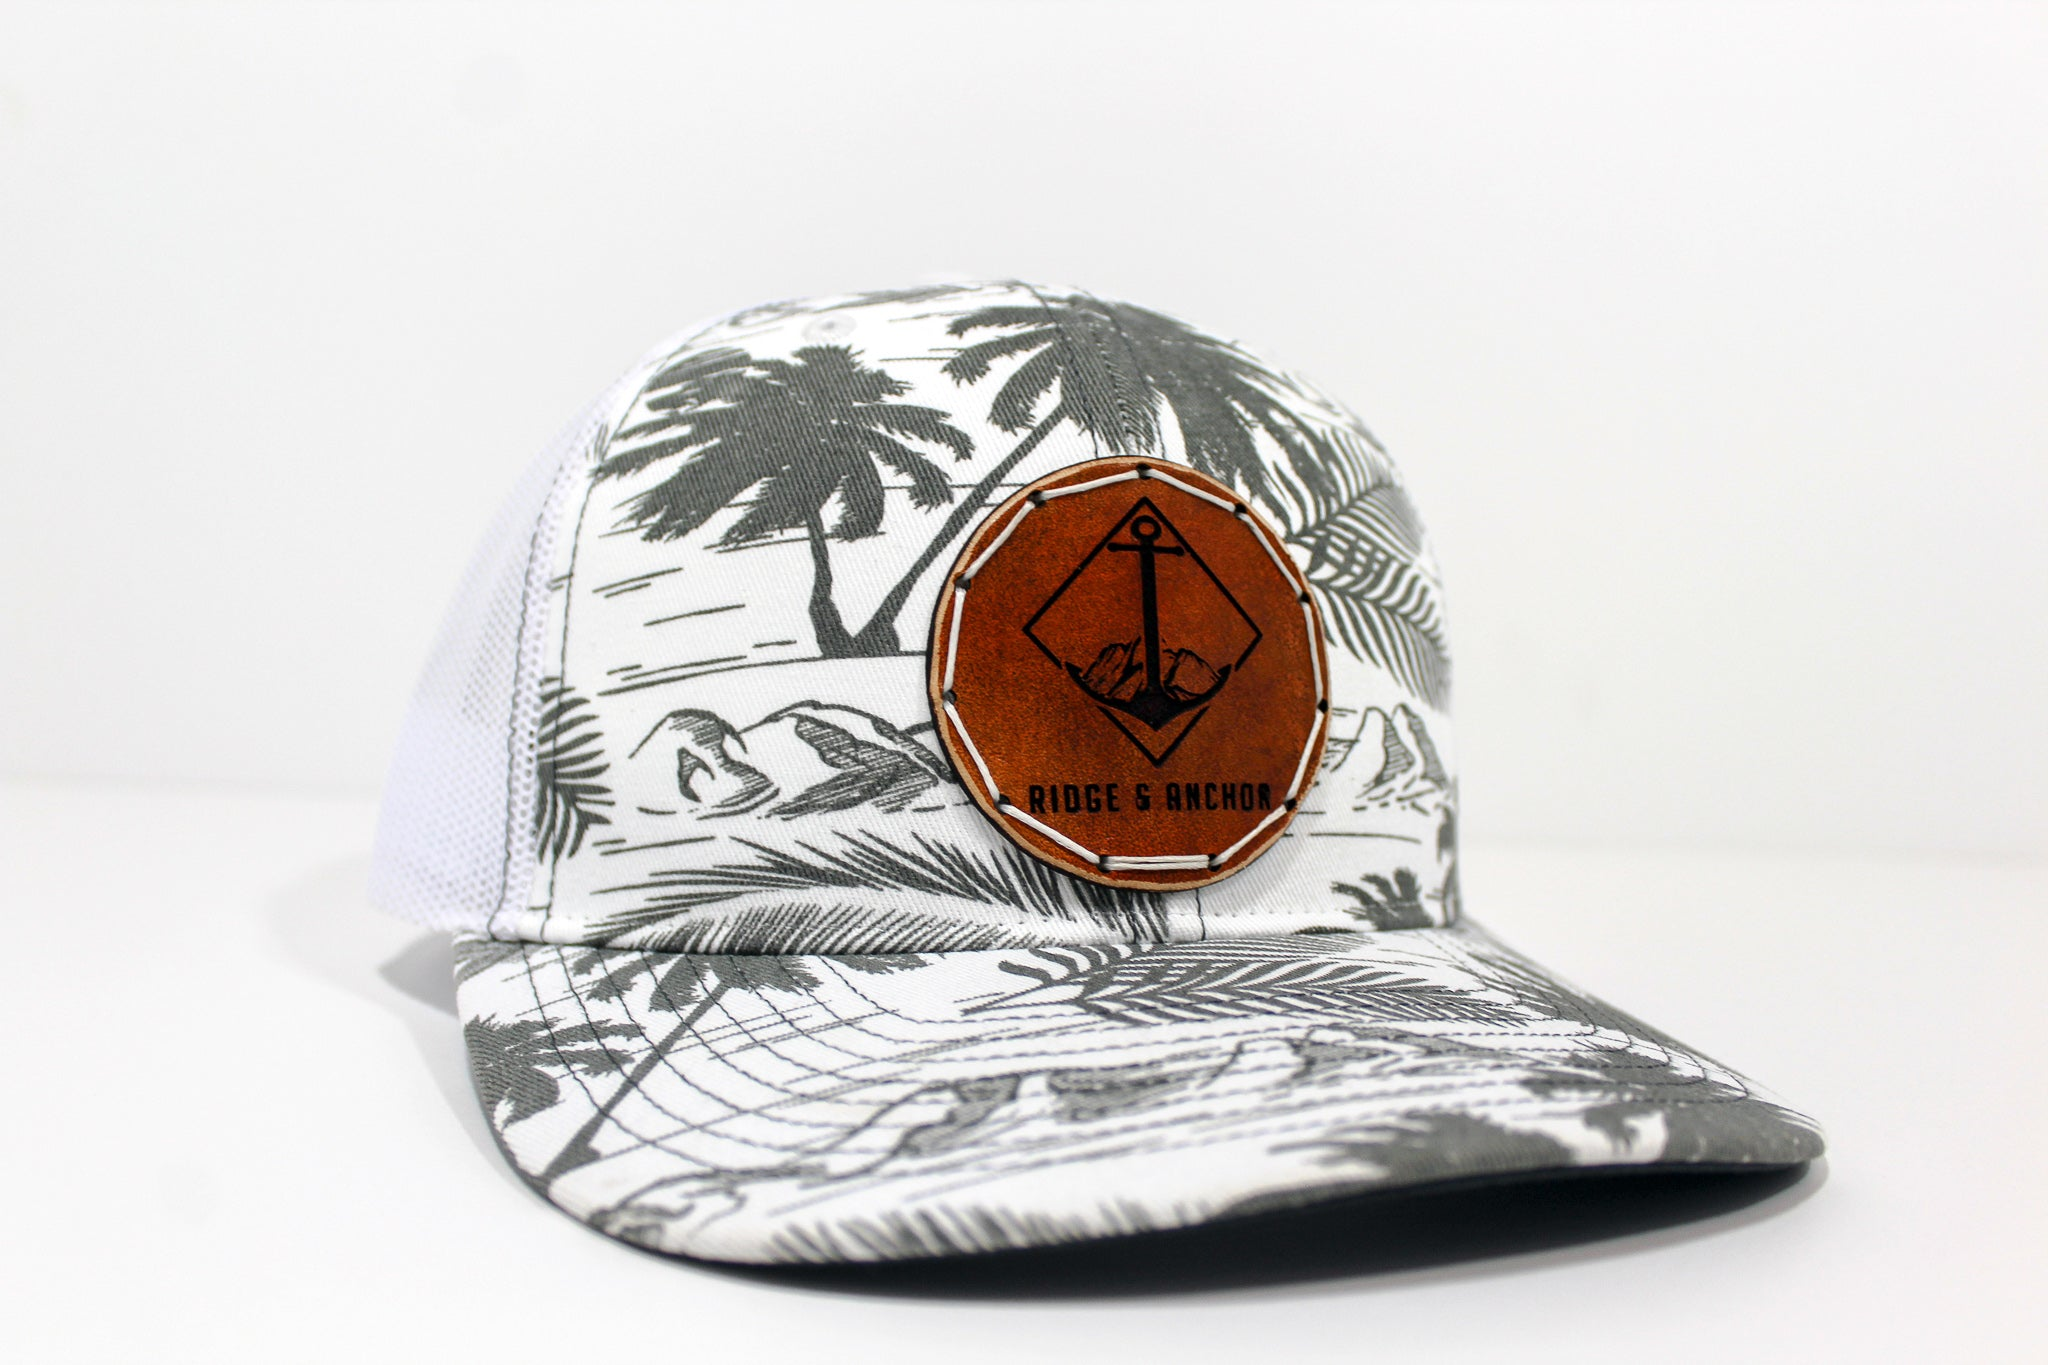 Limited White & Black Island Trucker Mid Profile - R&A Anchor Circle Logo & White Thread